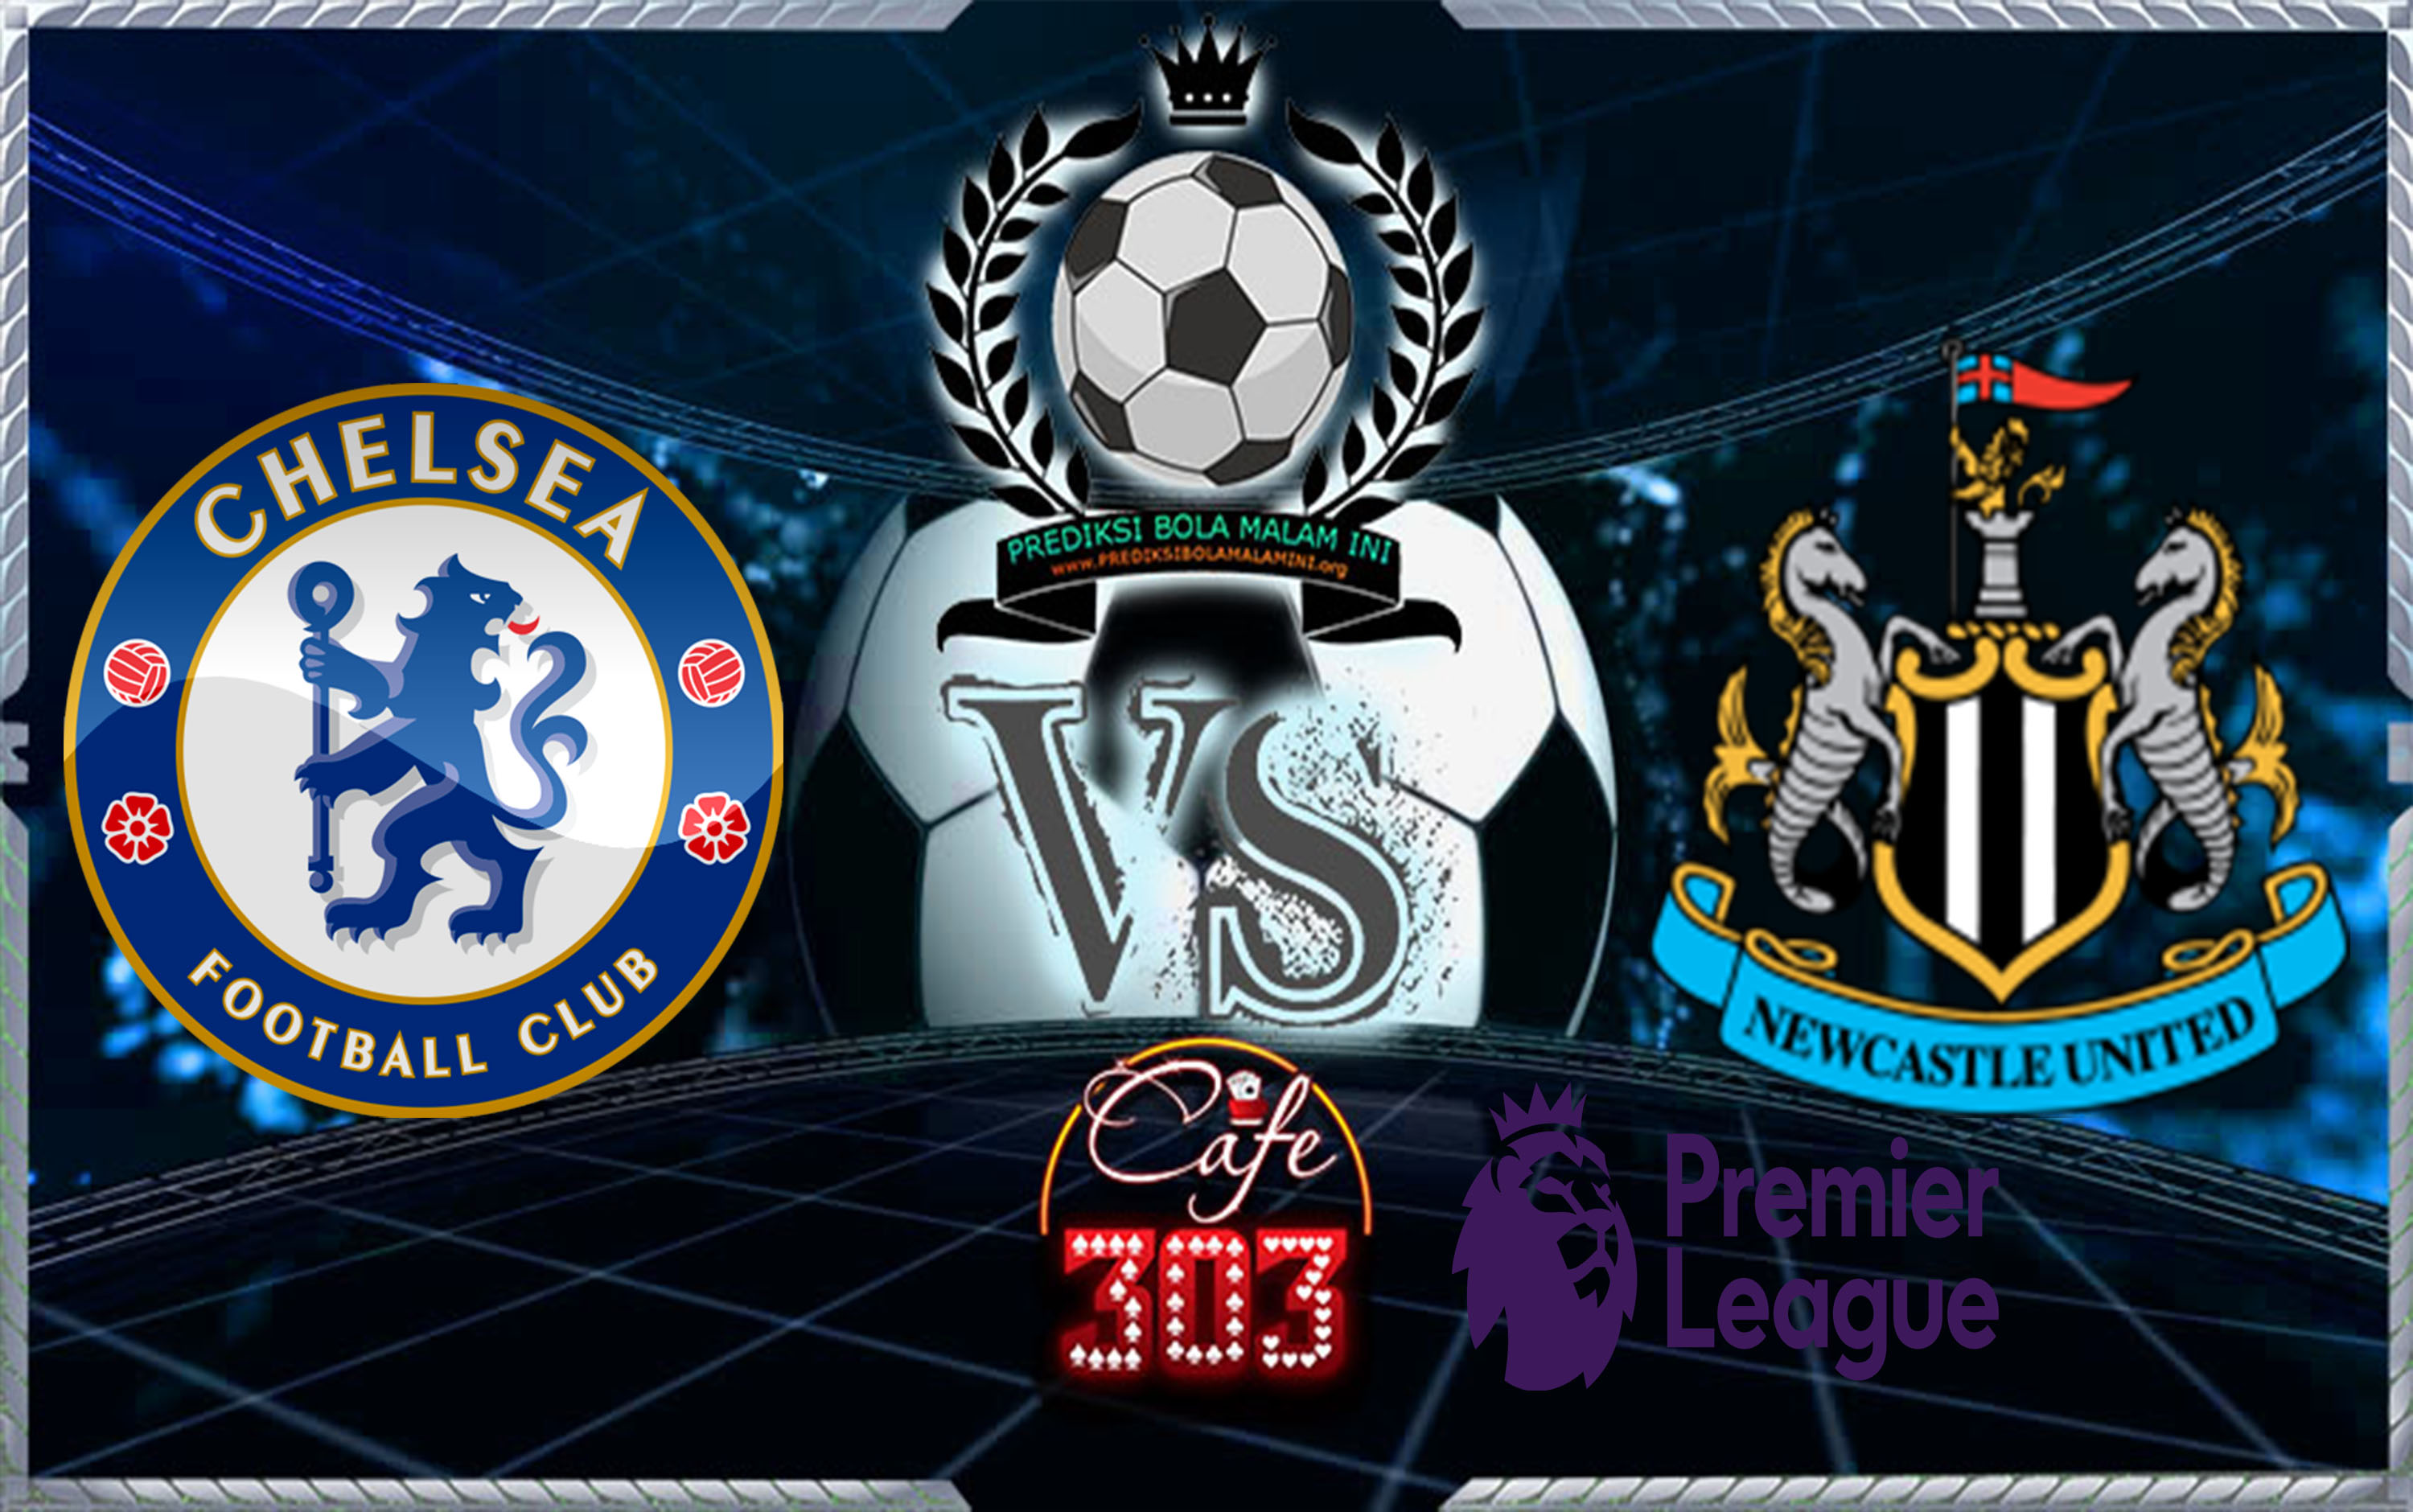 Prediksi Skor CHELSEA Vs NEWCASTLE UNITED 2 DESEMBER 2017 &quot;width =&quot; 640 &quot;height =&quot; 401 &quot;/&gt; </p> <p> <span style=